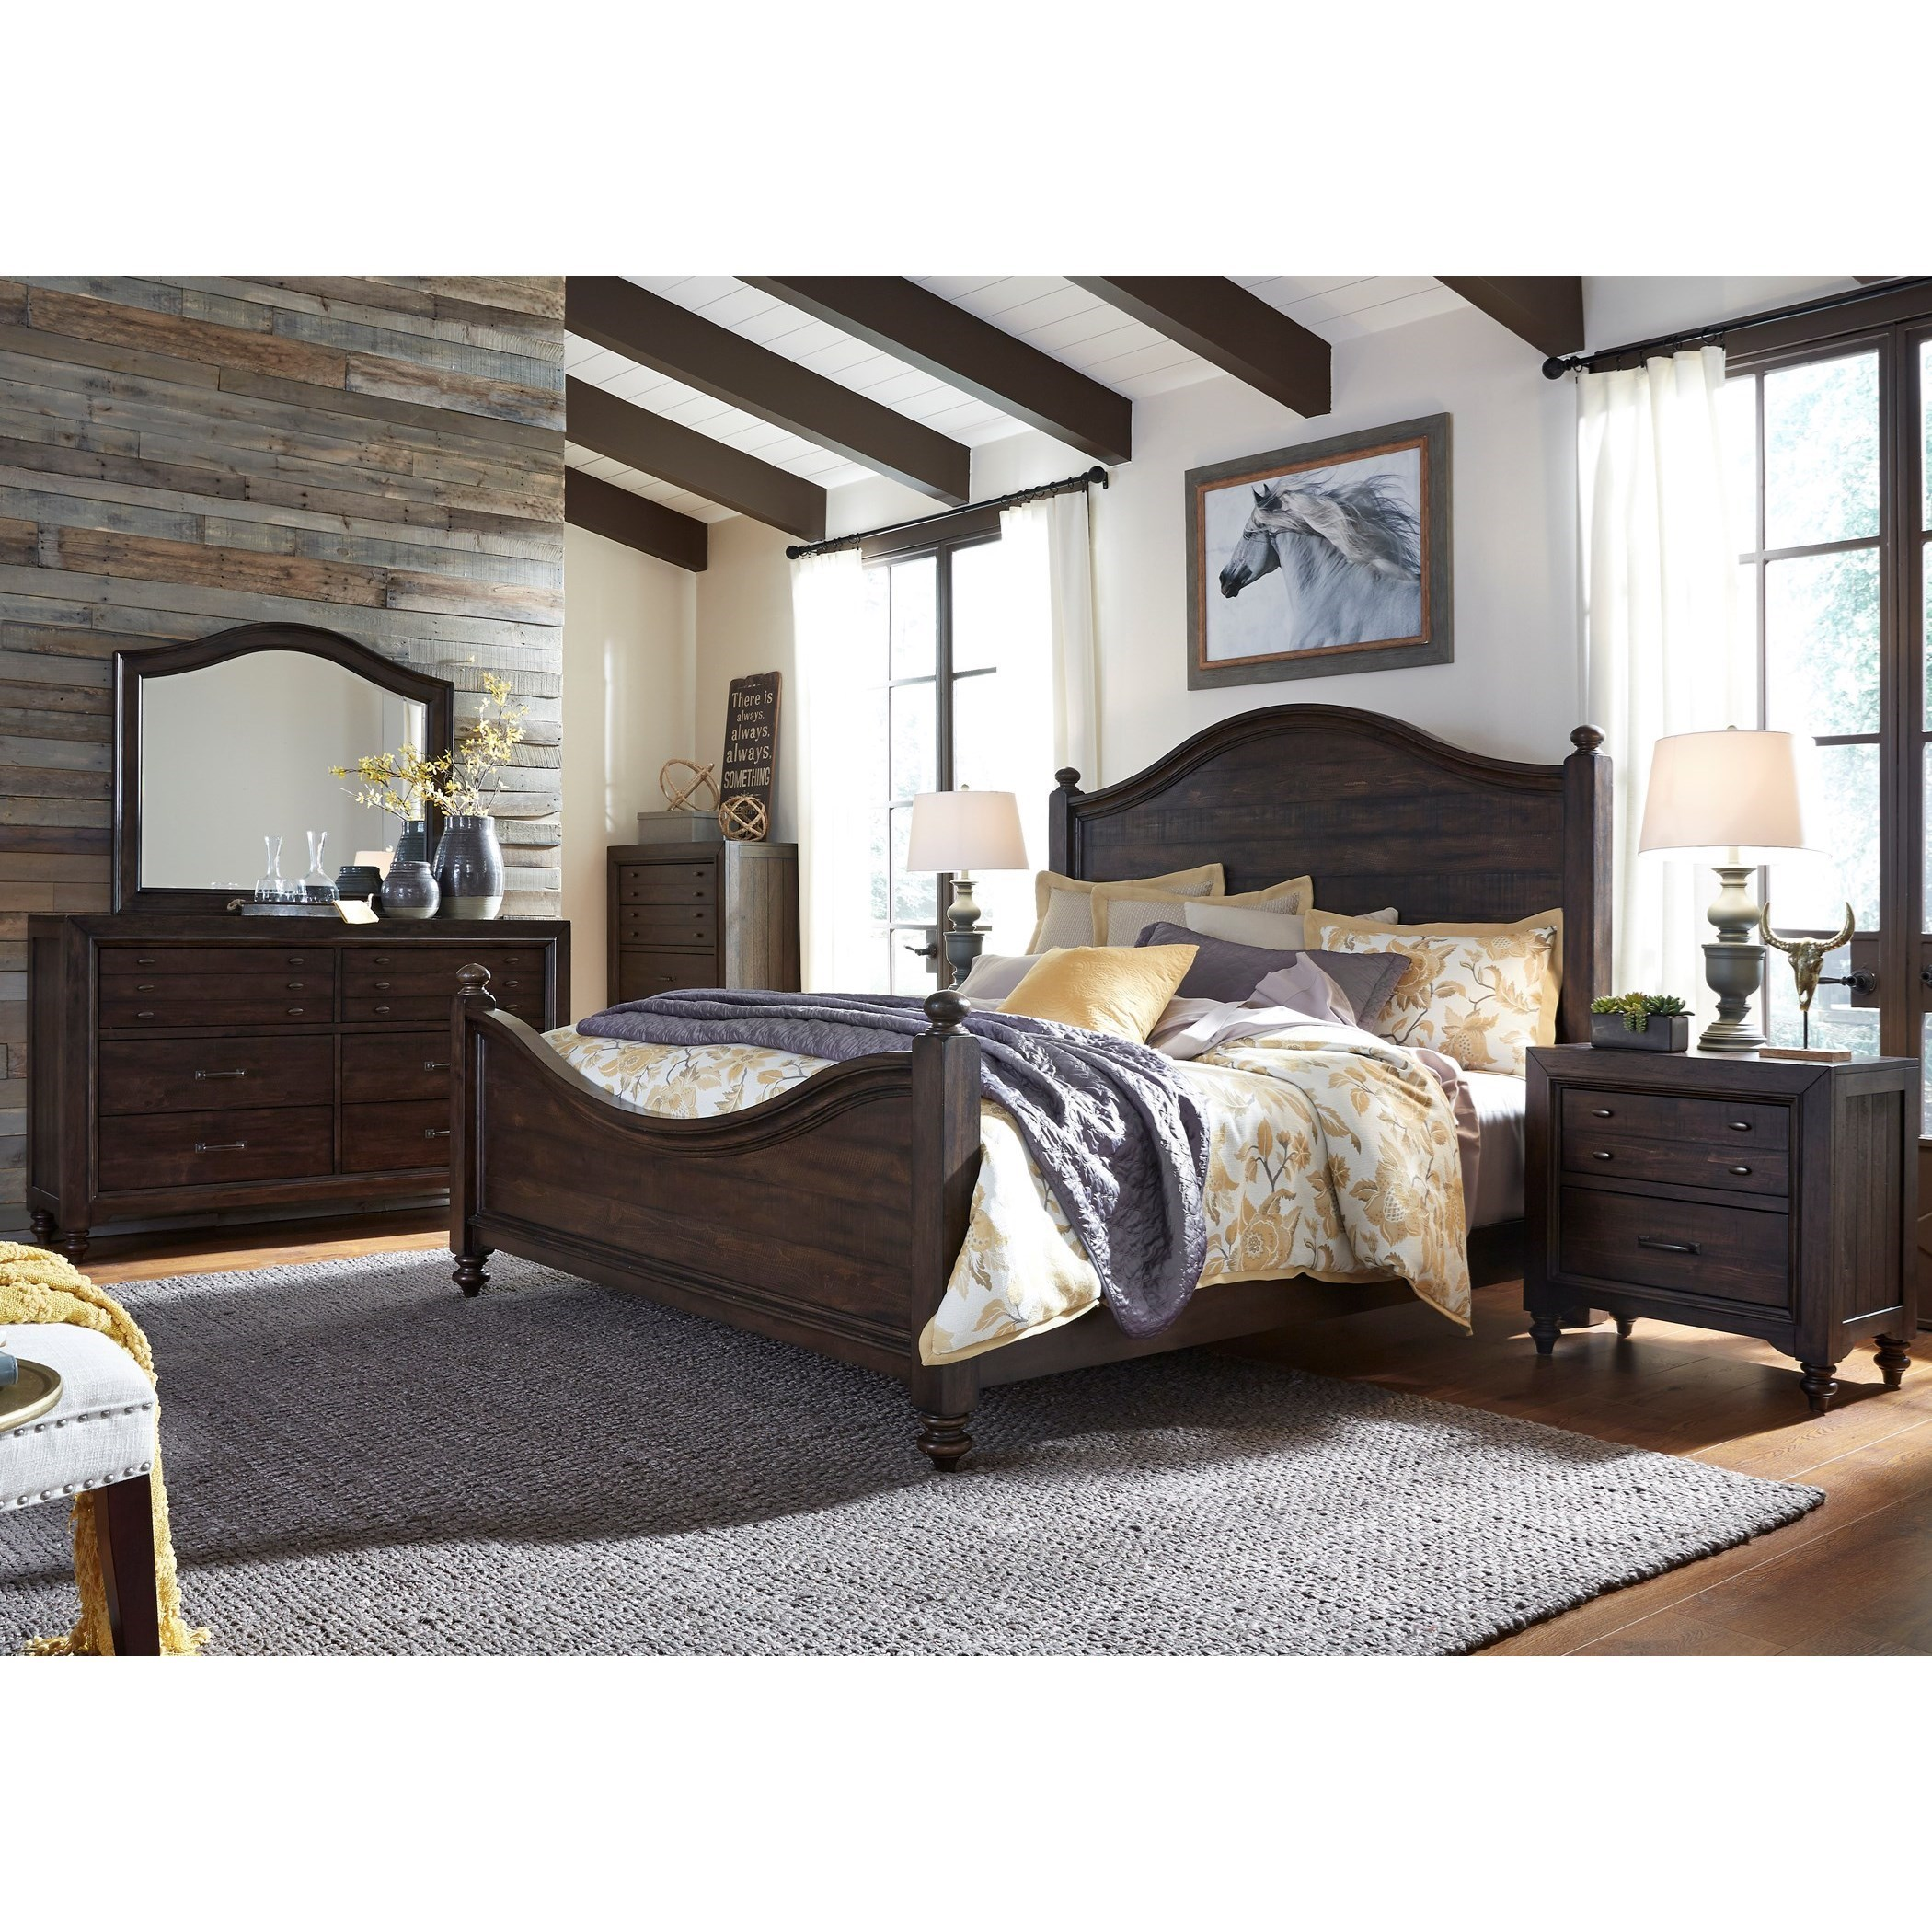 King Poster Bed Bedroom Group with Nightstand